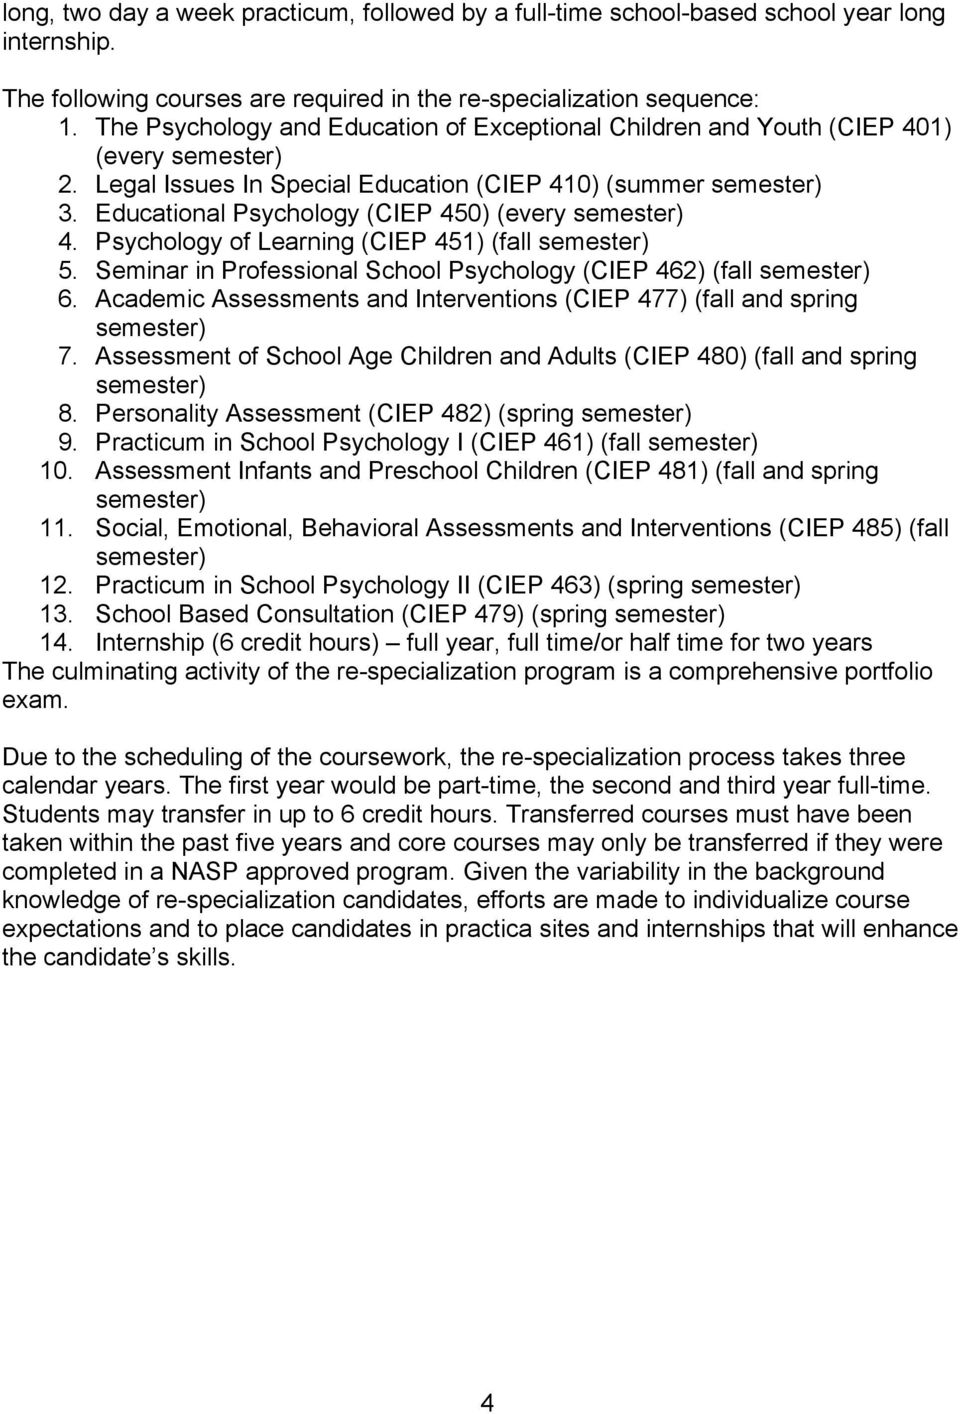 Psychology of Learning (CIEP 451) (fall 5. Seminar in Professional (CIEP 462) (fall 6. Academic Assessments and Interventions (CIEP 477) (fall and spring 7.